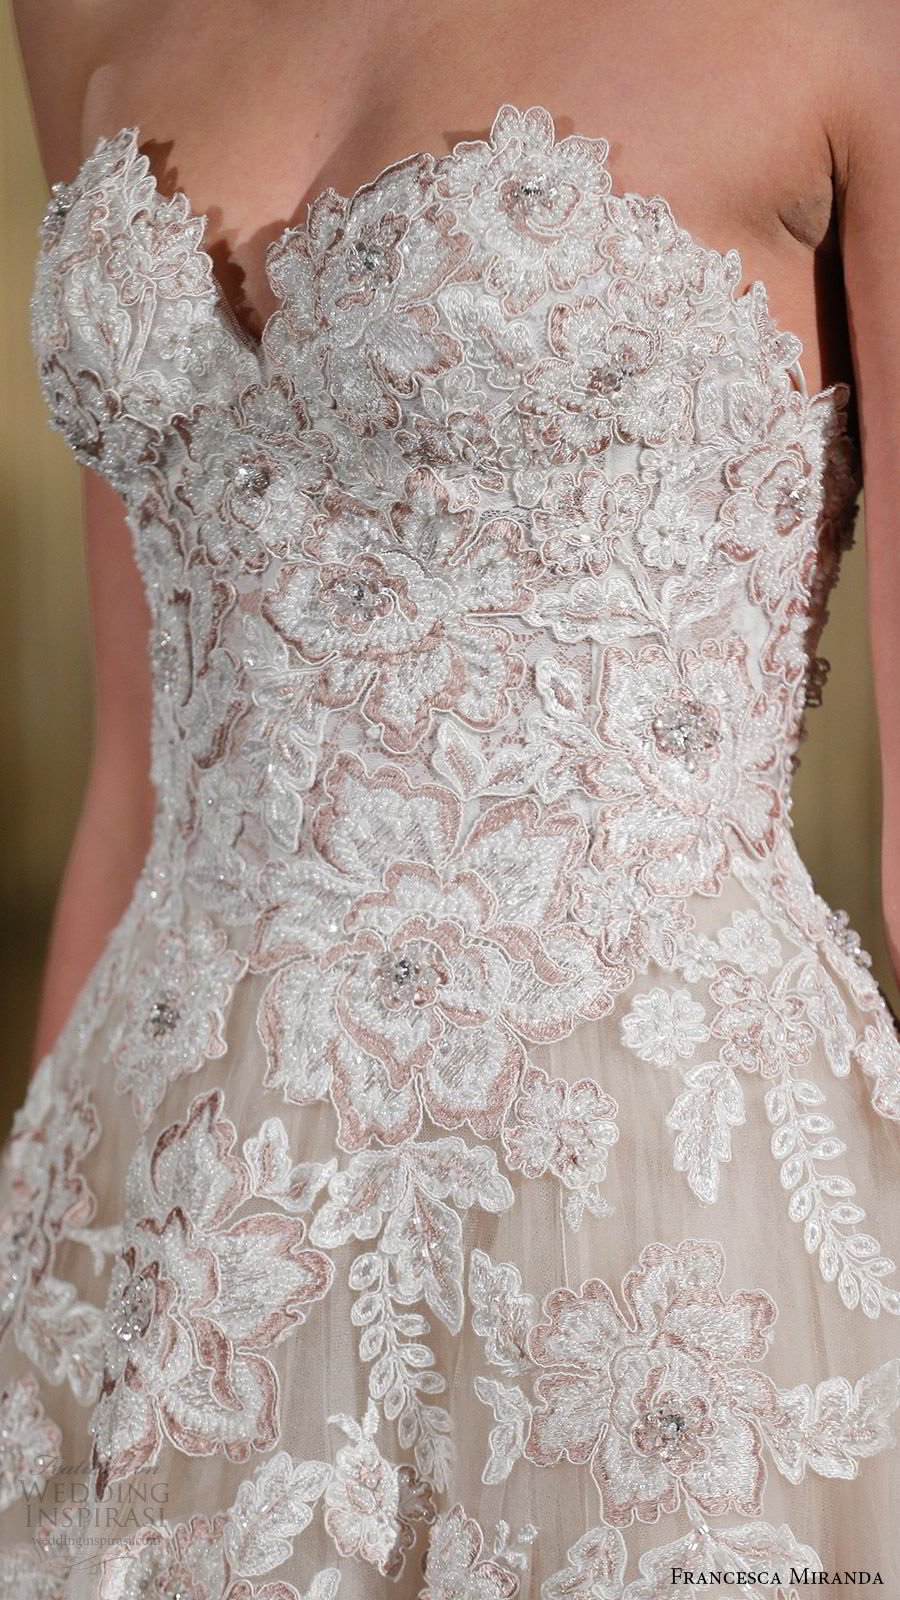 francesca miranda spring 2018 bridal strapless sweetheart blush embroidered bodice a line ball gown wedding dress (monique) zfv romantic